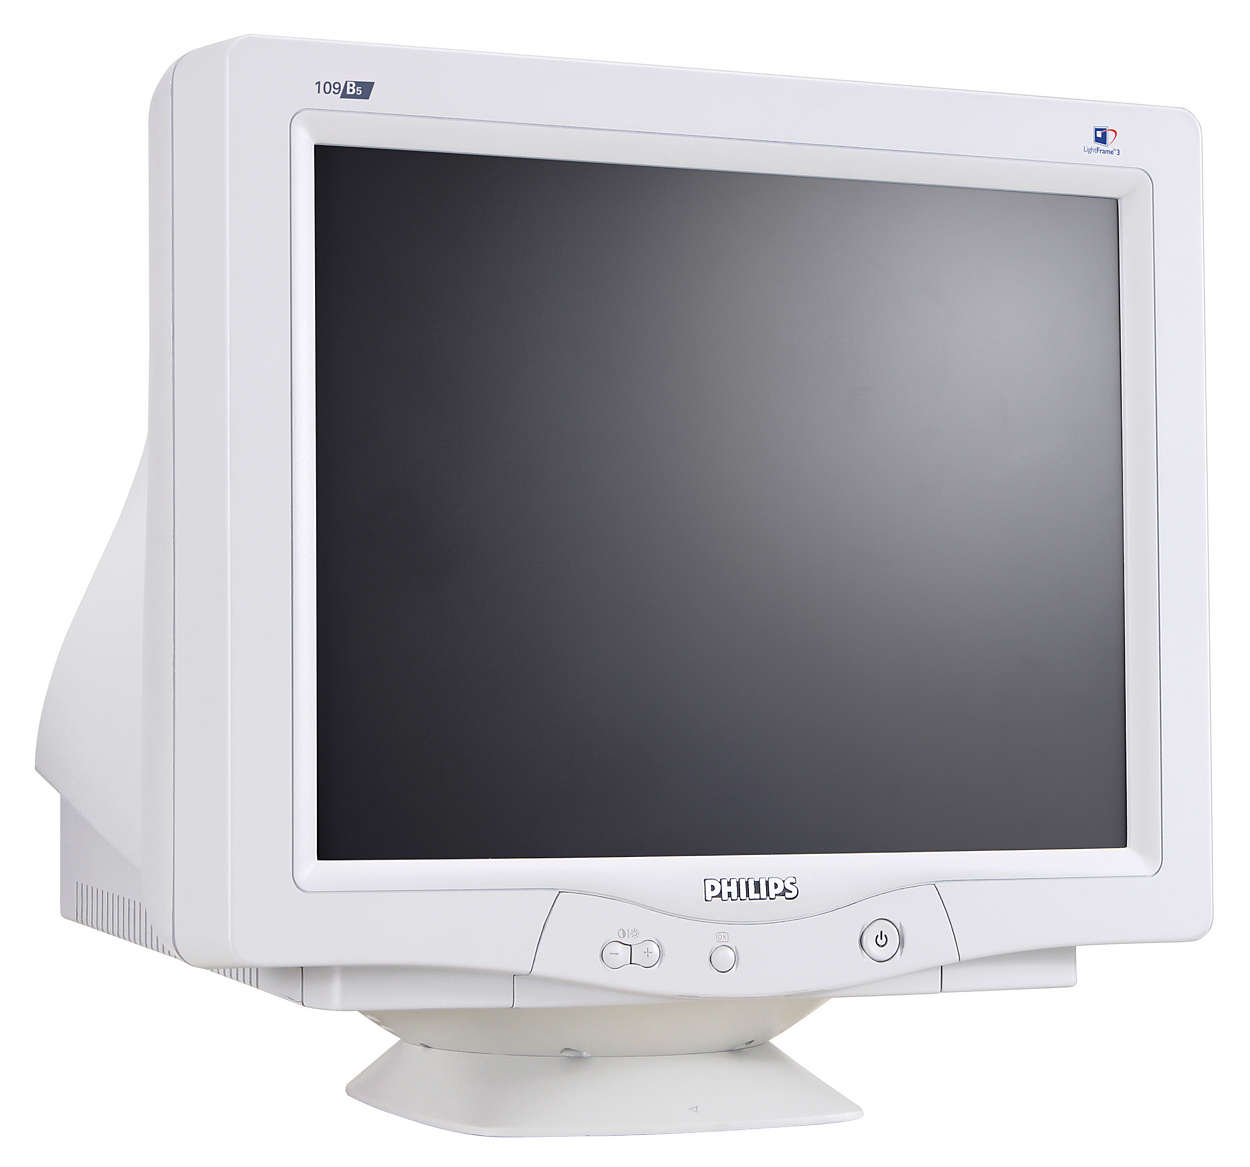 crt monitor 109b50 74 philips. Black Bedroom Furniture Sets. Home Design Ideas